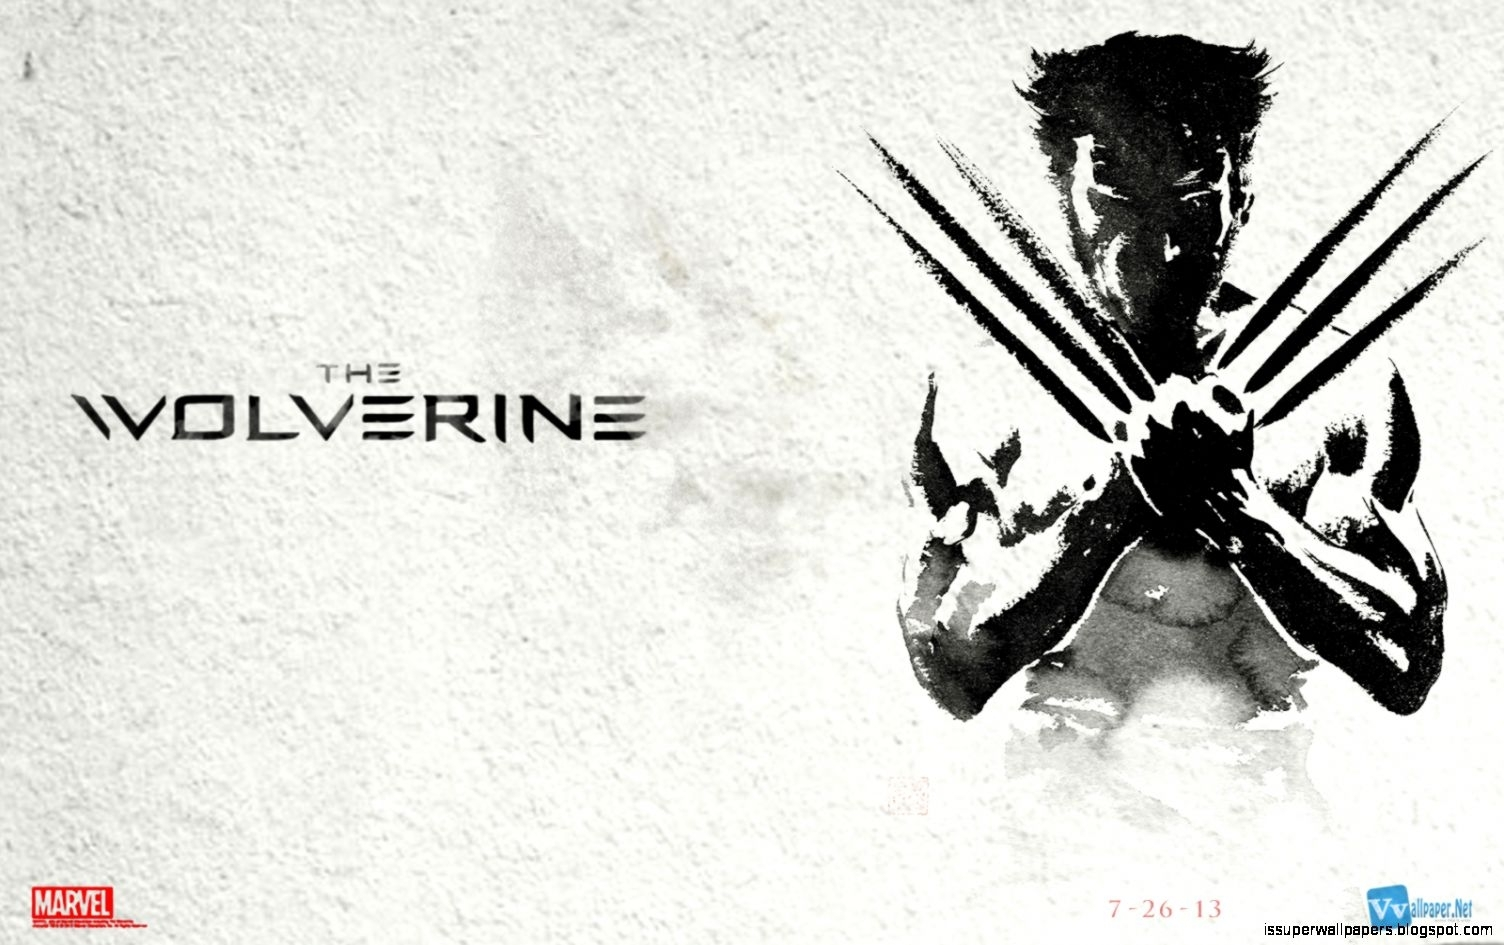 10 New Wolverine Black And White Wallpaper FULL HD 1080p For PC Background